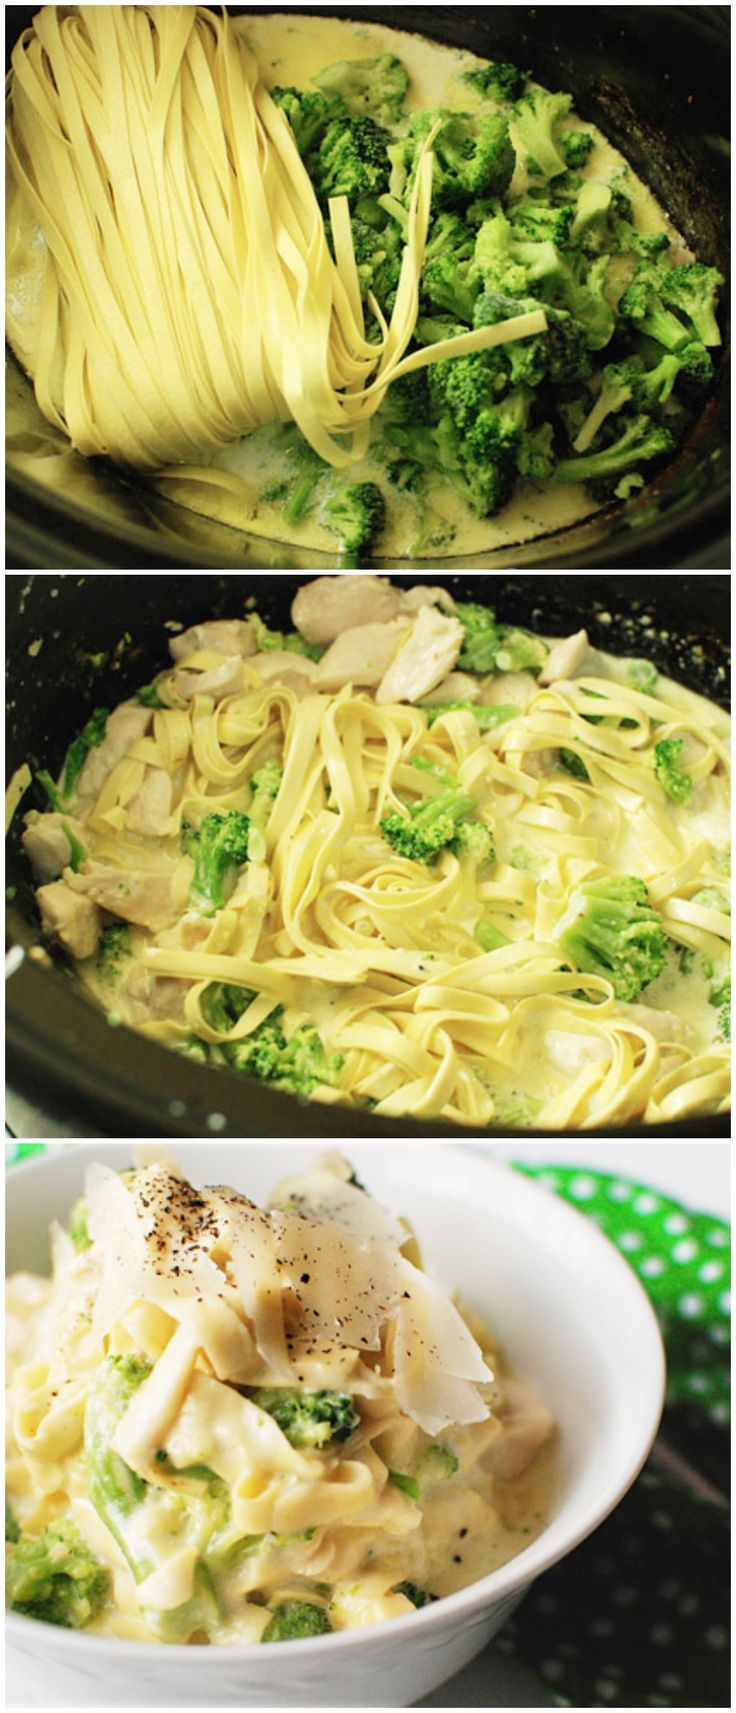 Crockpot Chicken Fettuccine AlfredoCrock Pots, Slowcooker Chicken, Slow Cooker Chicken, Fettuccine Alfredo, Crockpot Chicken, Chicken Slowcooker Recipe, Chicken Broccoli, Chicken Fettuccine, Chicken Breast